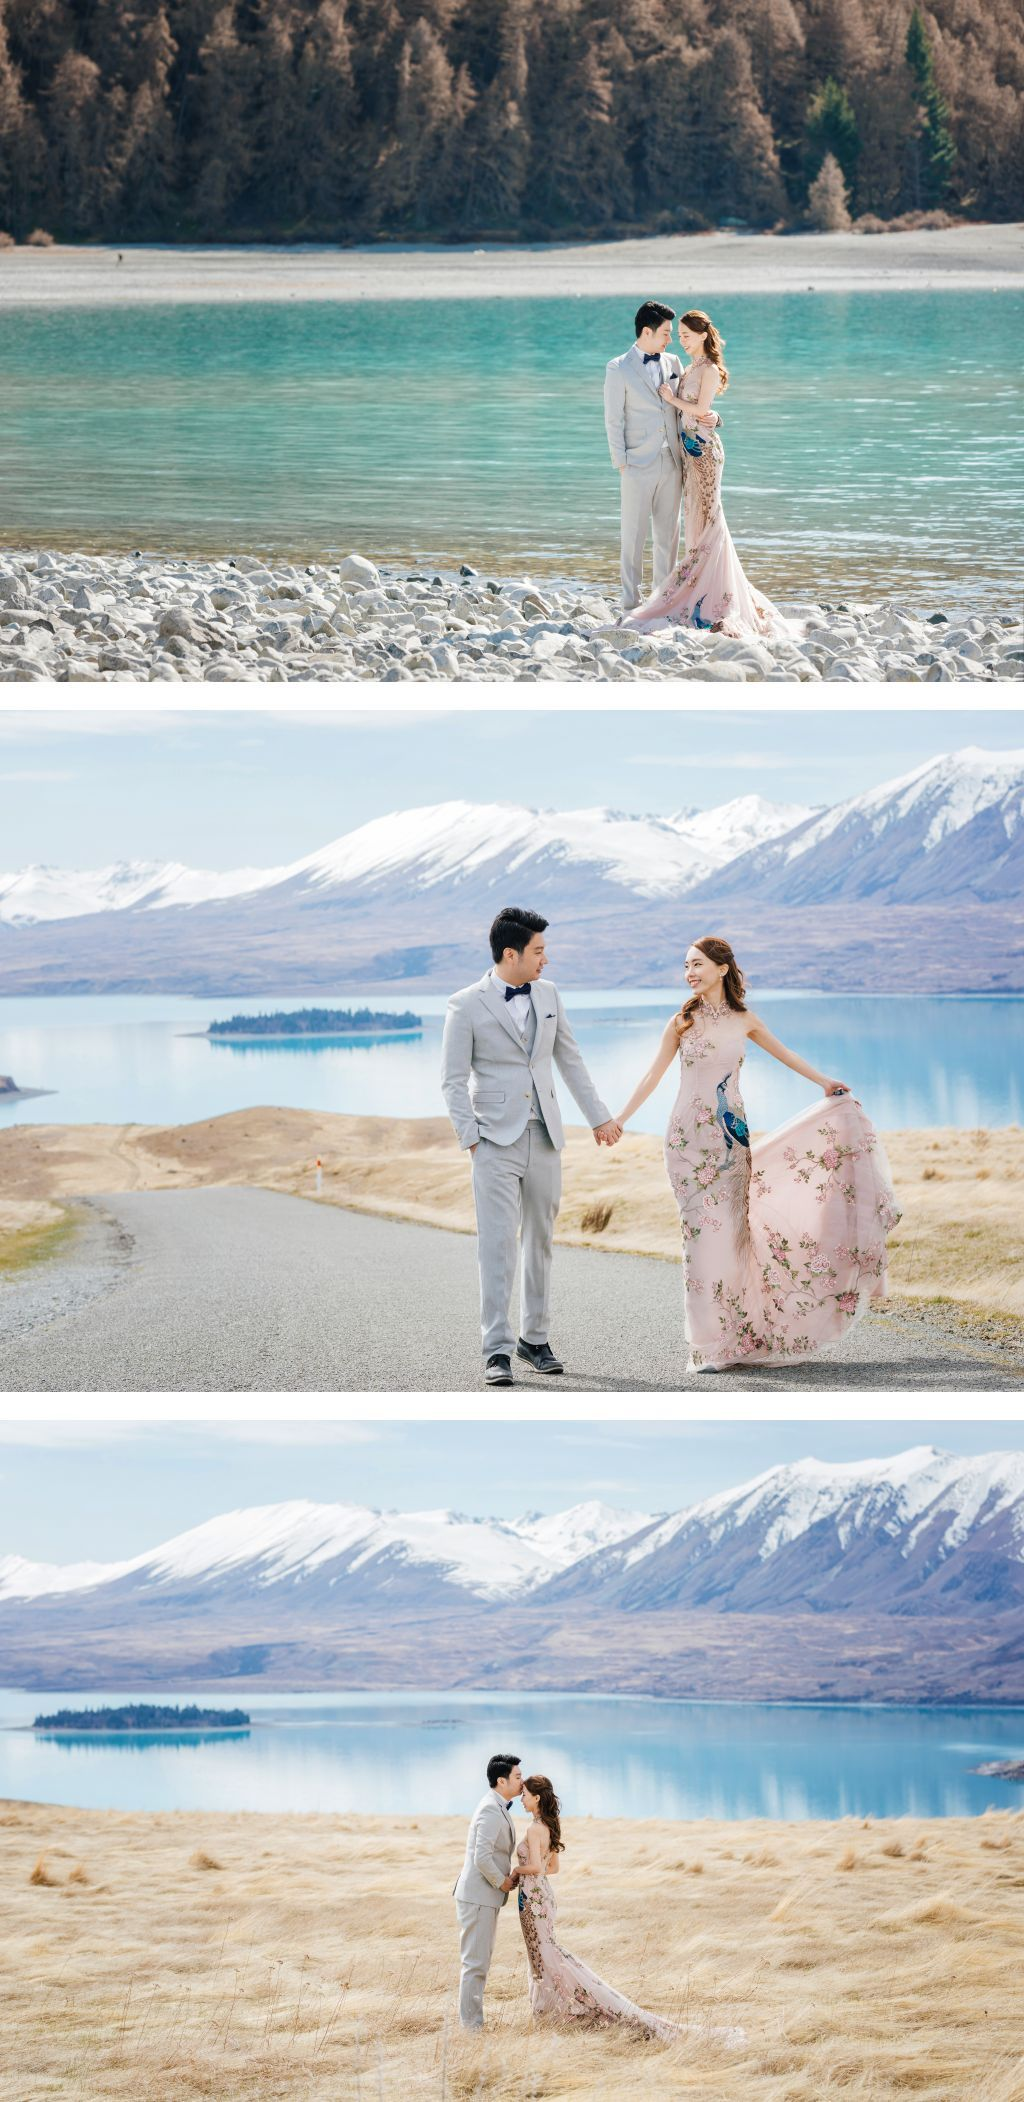 Wedding photoshoot in New Zealand Rated 4.9 stars